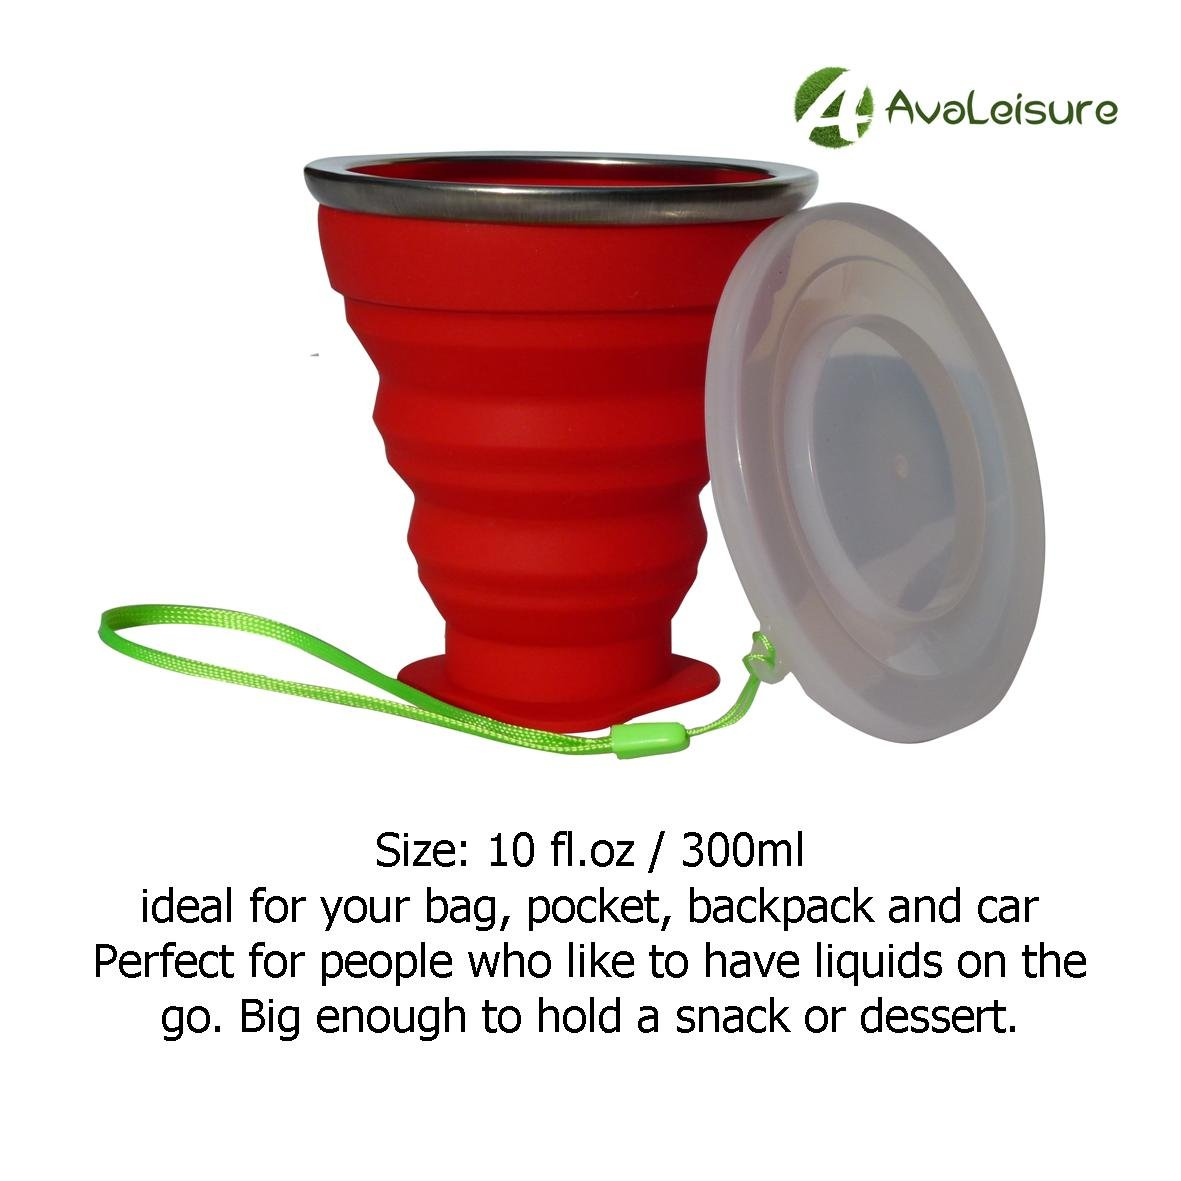 AVALEISURE COLLAPSIBLE SILICONE TRAVEL CUP- the Genuine 10oz Foldable Drinking Mug with Lid, BPA Free, Water, Coffee, Tea & Snacks for Hiking, Camping, Picnic & Commuting to Work by AVALEISURE (Image #5)